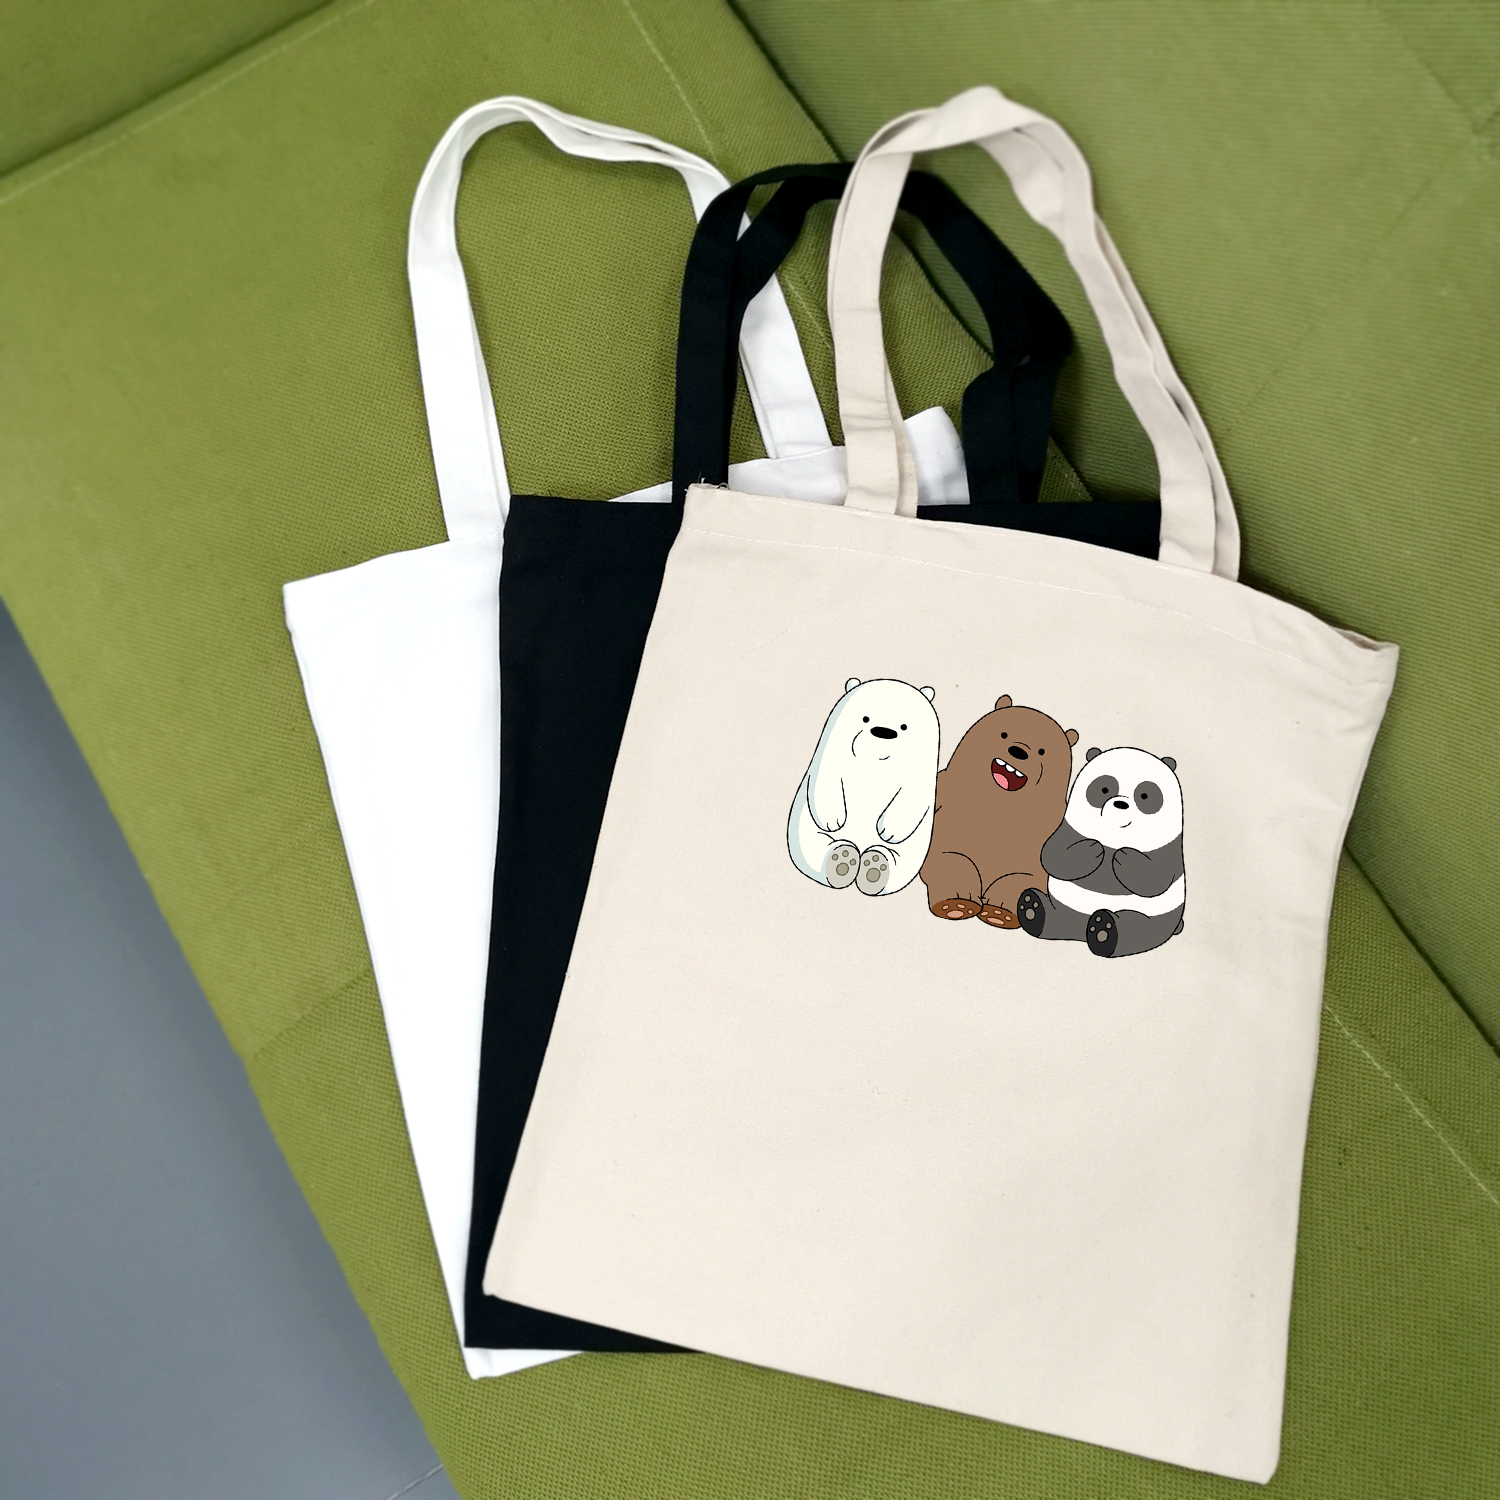 Anime Bears Printed Cute Cartoon Large Capacity Canvas Tote Bag Fabric Cotton Cloth Reusable Shopping Bag Women Beach Handbags